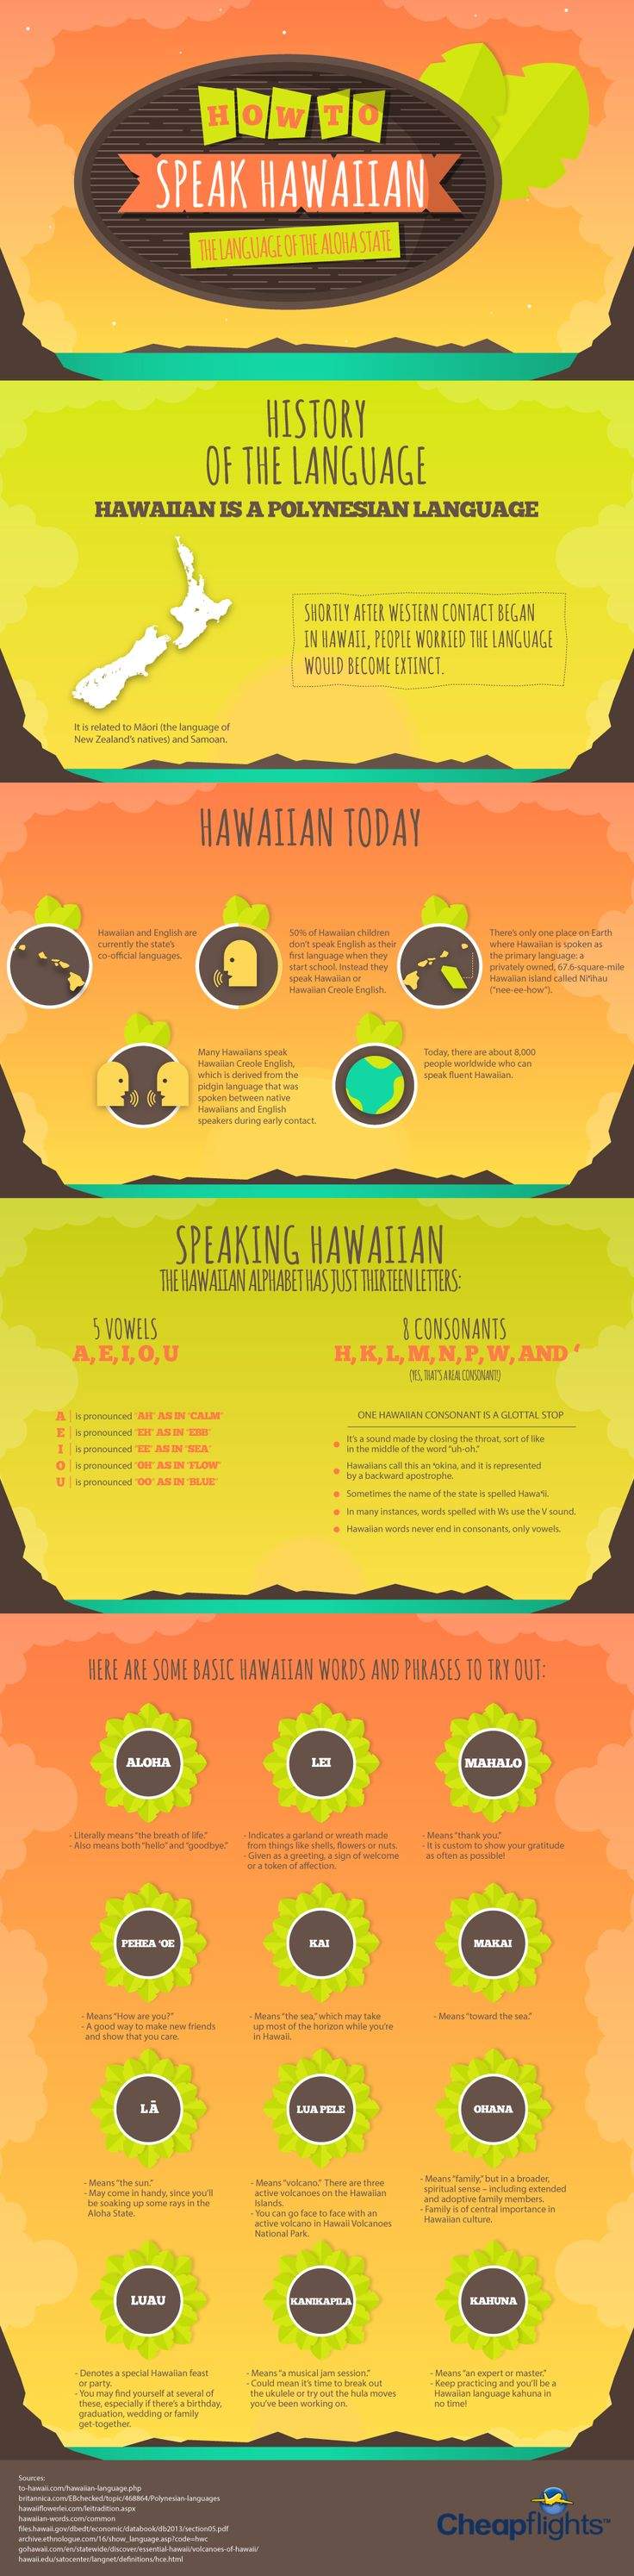 How to Speak Hawaiian #infographic #Travel #Hawaii #Language